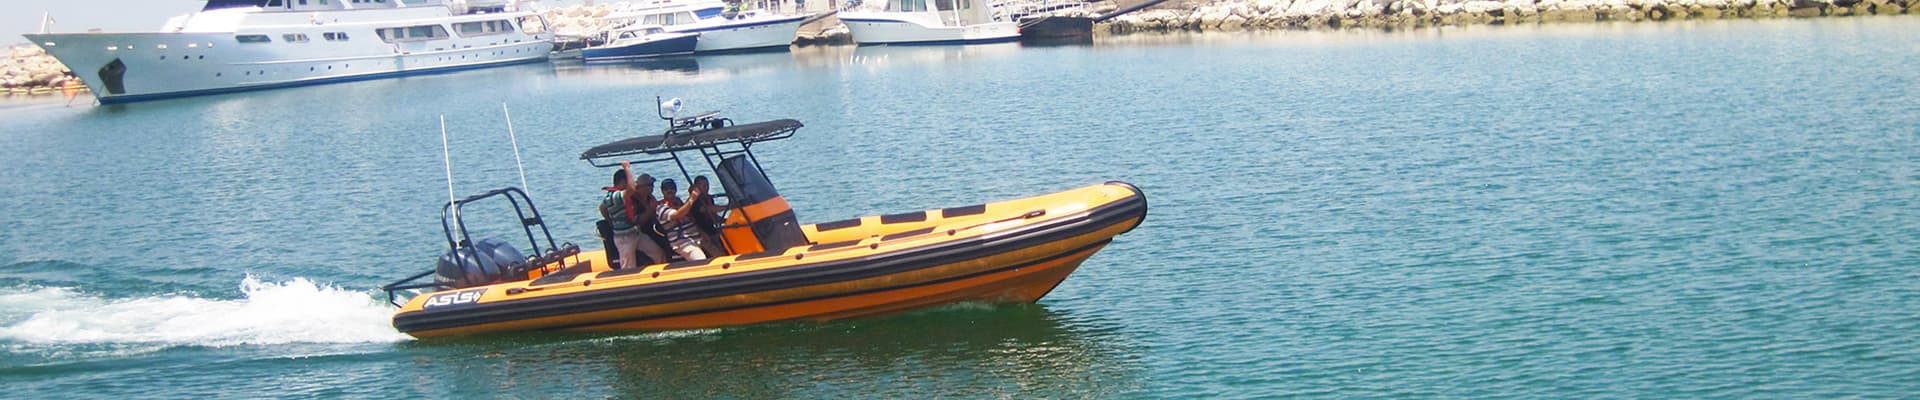 oil-gas-rigid-inflatable-boat